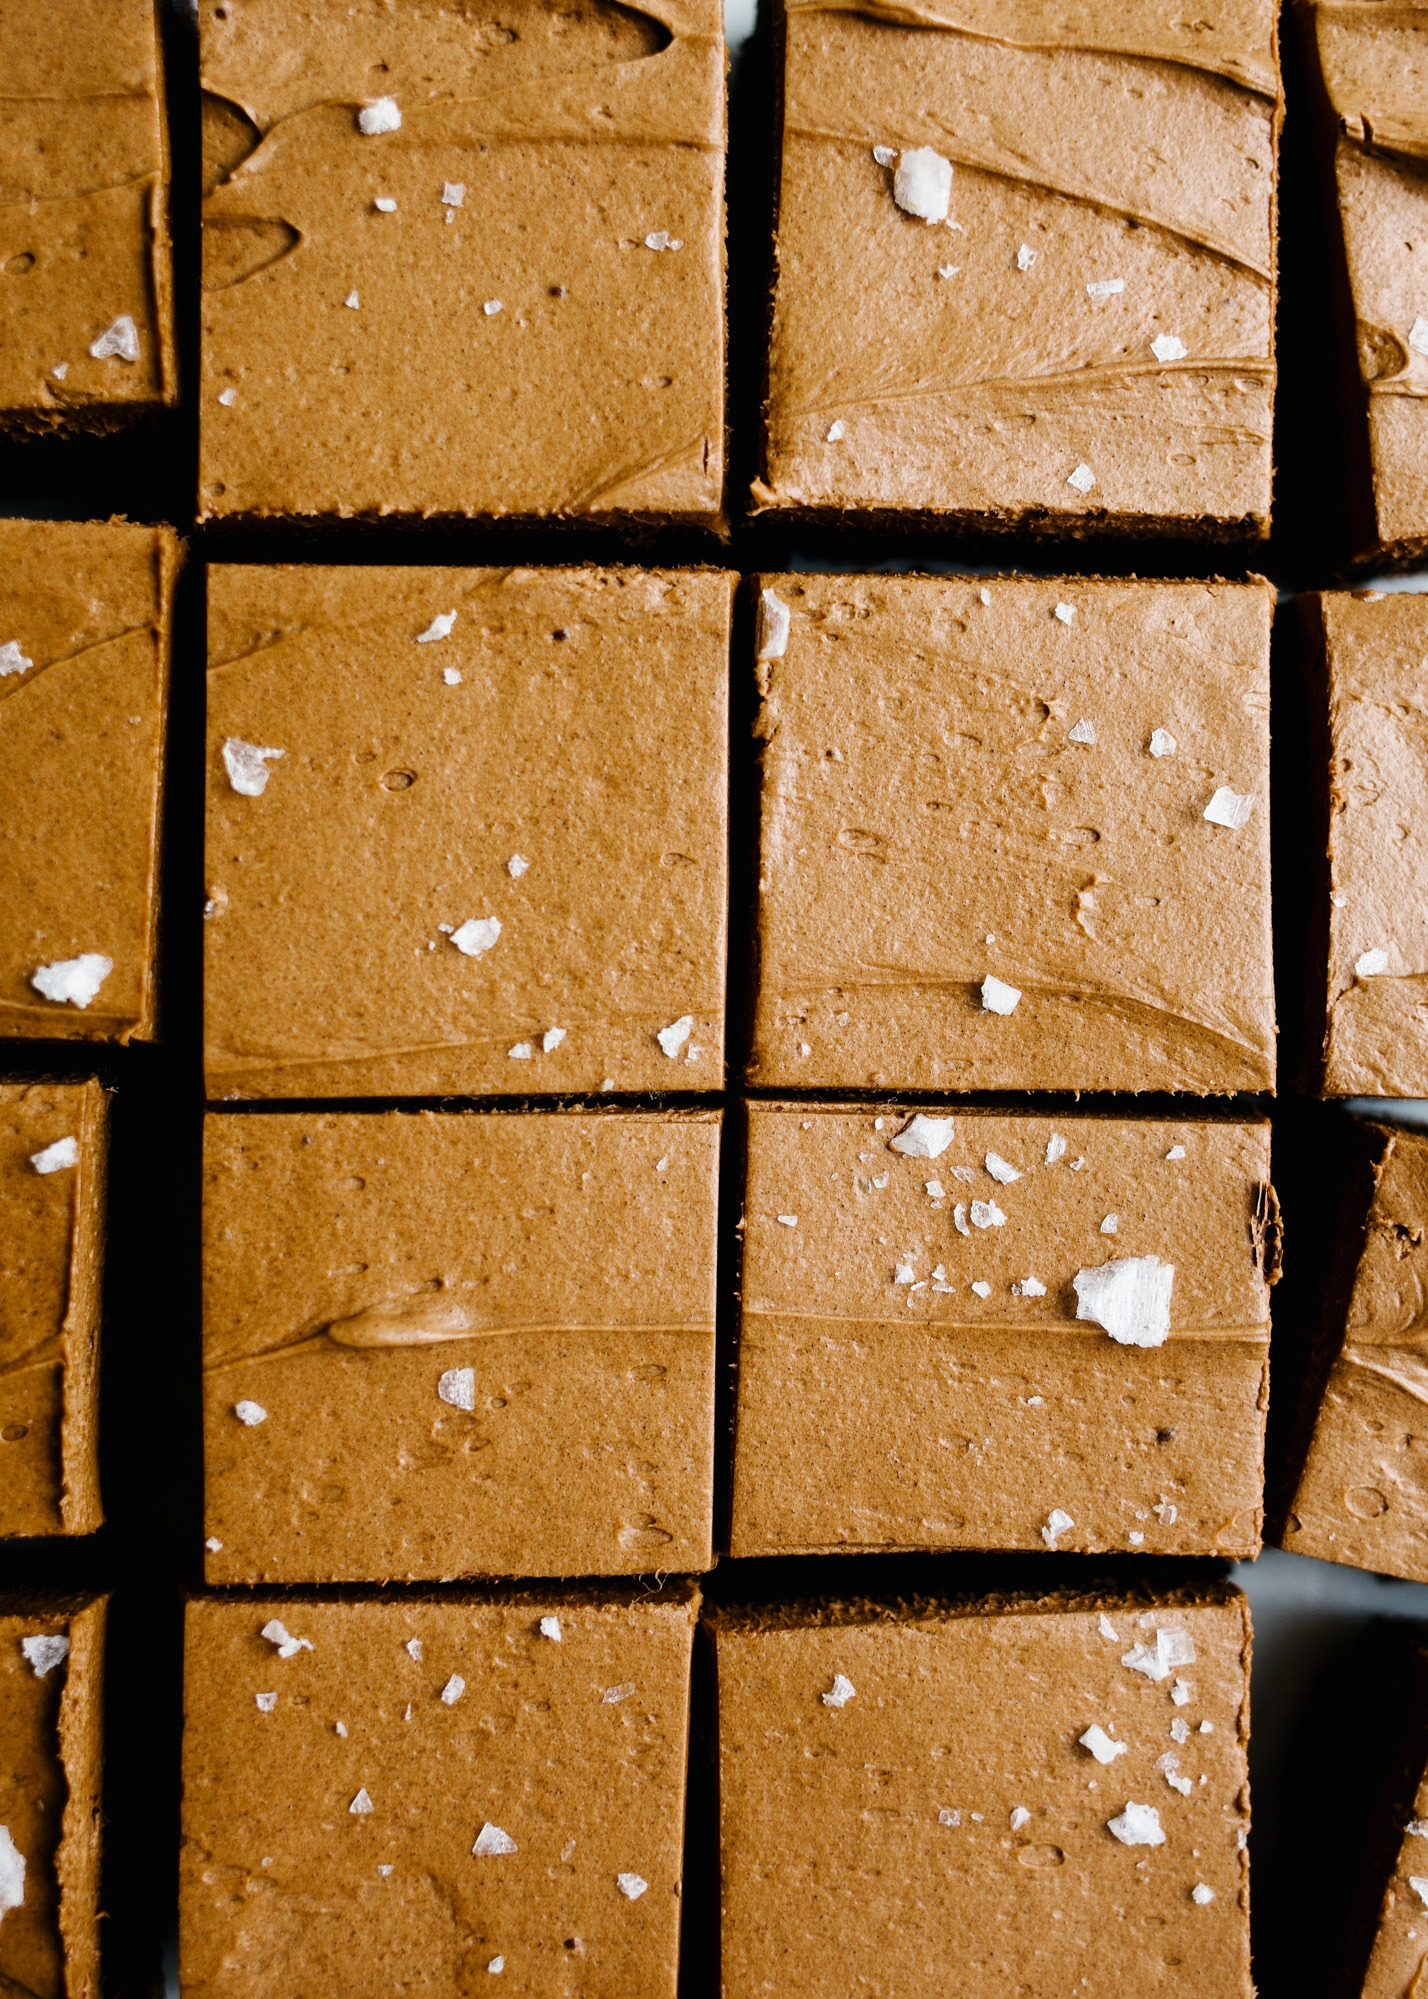 Caramel Ganache Brownies by Wood and Spoon. These are intensely chocolatey bars with a whipped caramel chocolate ganache topping and flaked sea salt. These brownies are made with butter, chopped chocolate, and just enough sugar for balance. The result is a dense and rich treat that is a perfect dessert all year round. Learn how to make these bars for a crowd on thewoodandspoon.com